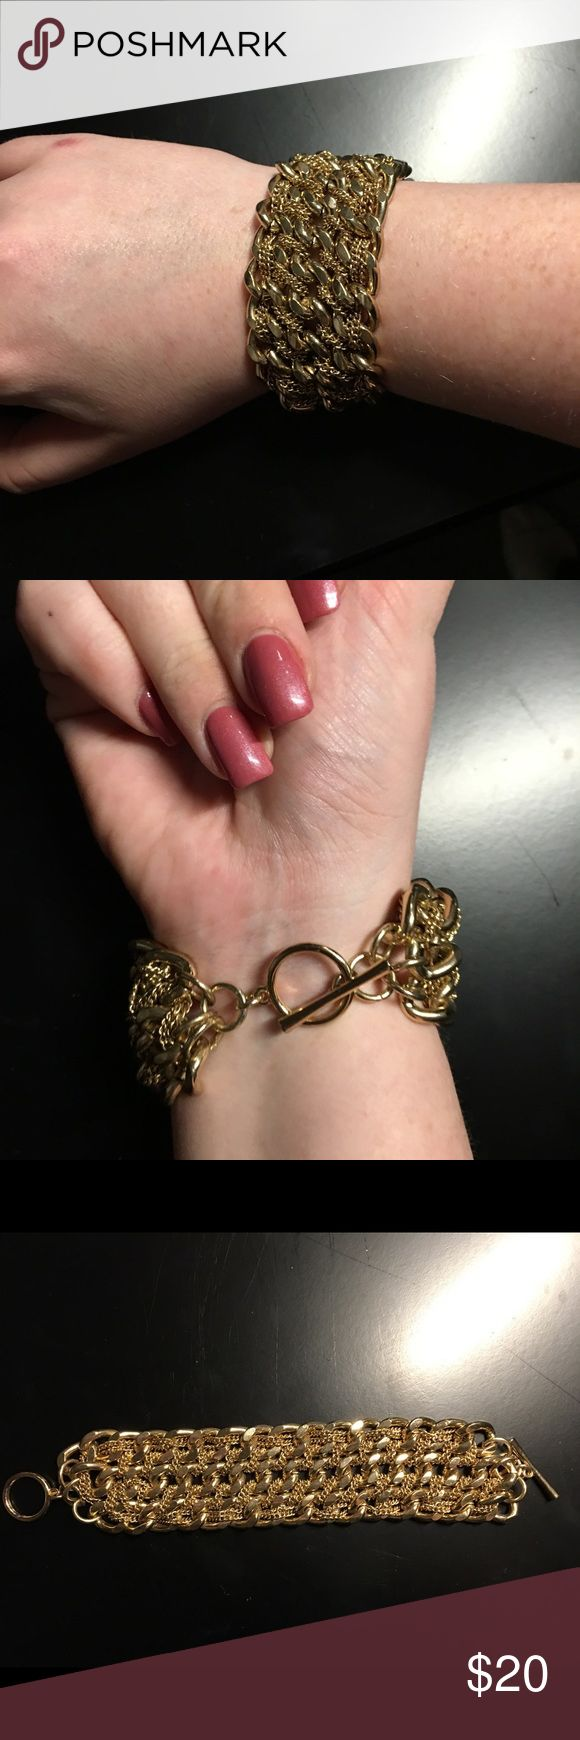 Gold chain bracelet Thick gold chain bracelet, a great accessory for any occasion, few scuffs on some chains but still looks brand new Jewelry Bracelets